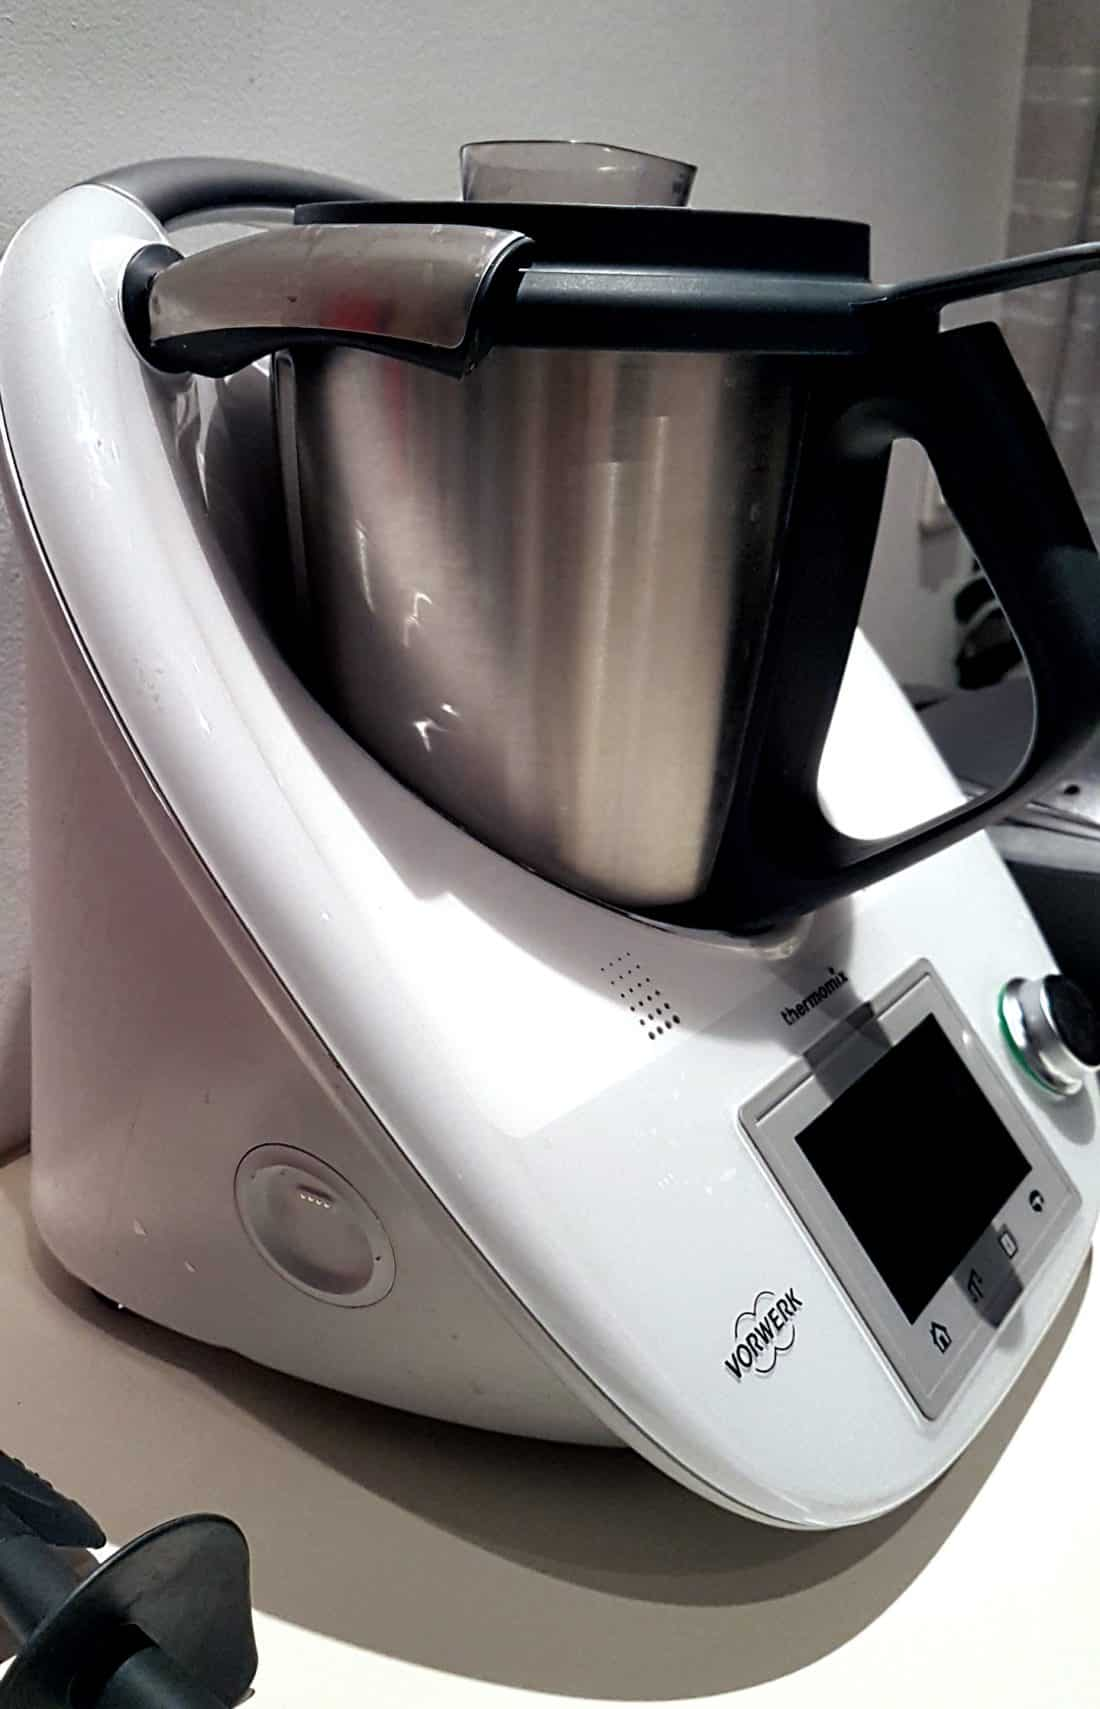 Avis Thermomix Tm5 2015 test : thermomix tm5 + cook-key. -